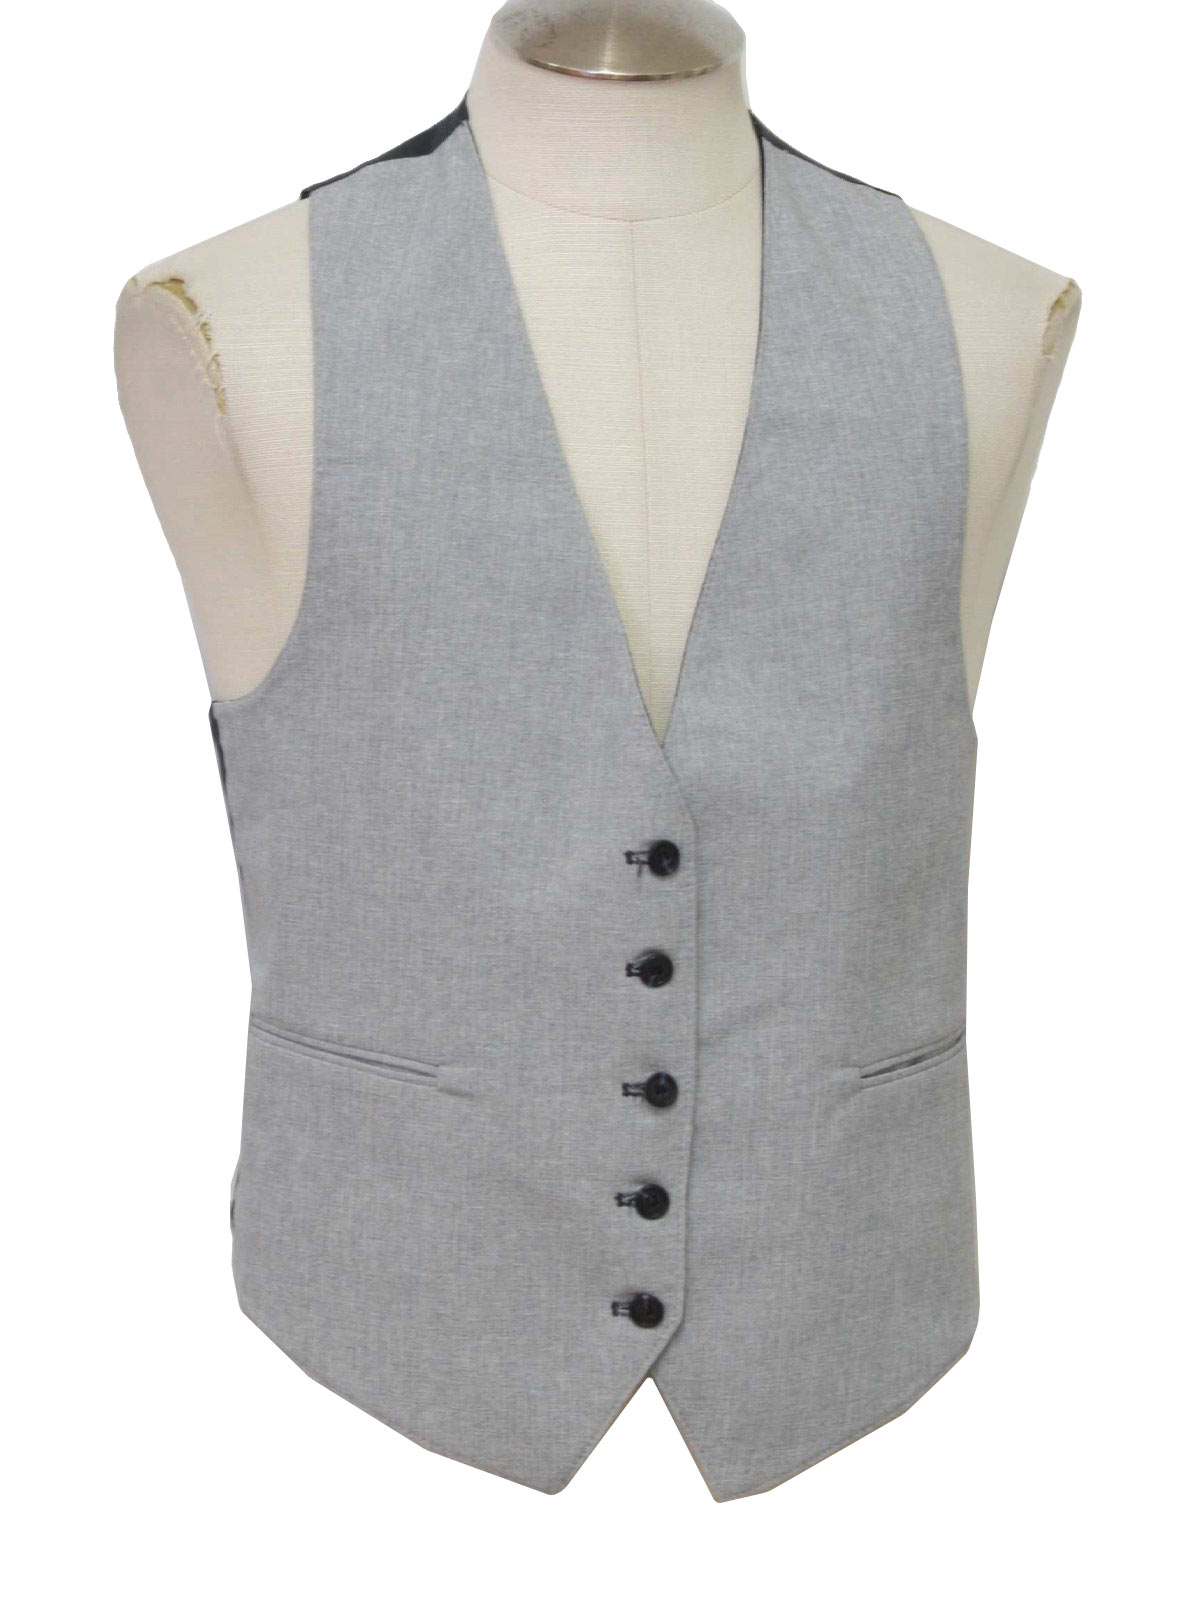 Light Grey Tuxedo Suit Suit Vest With Light Grey